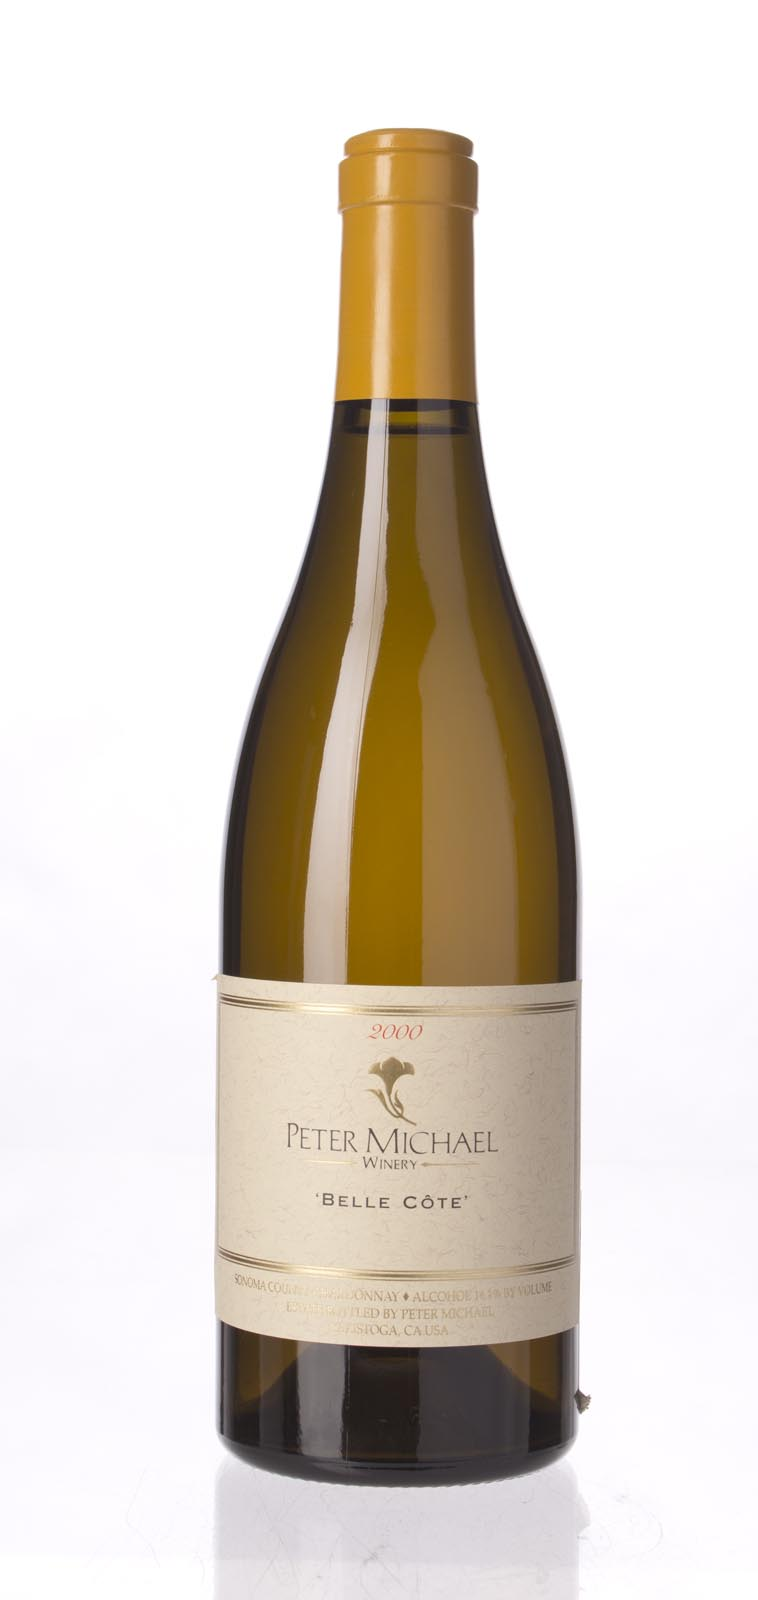 Peter Michael Winery Chardonnay Belle Cote 2000, 750mL (ST90) from The BPW - Merchants of rare and fine wines.